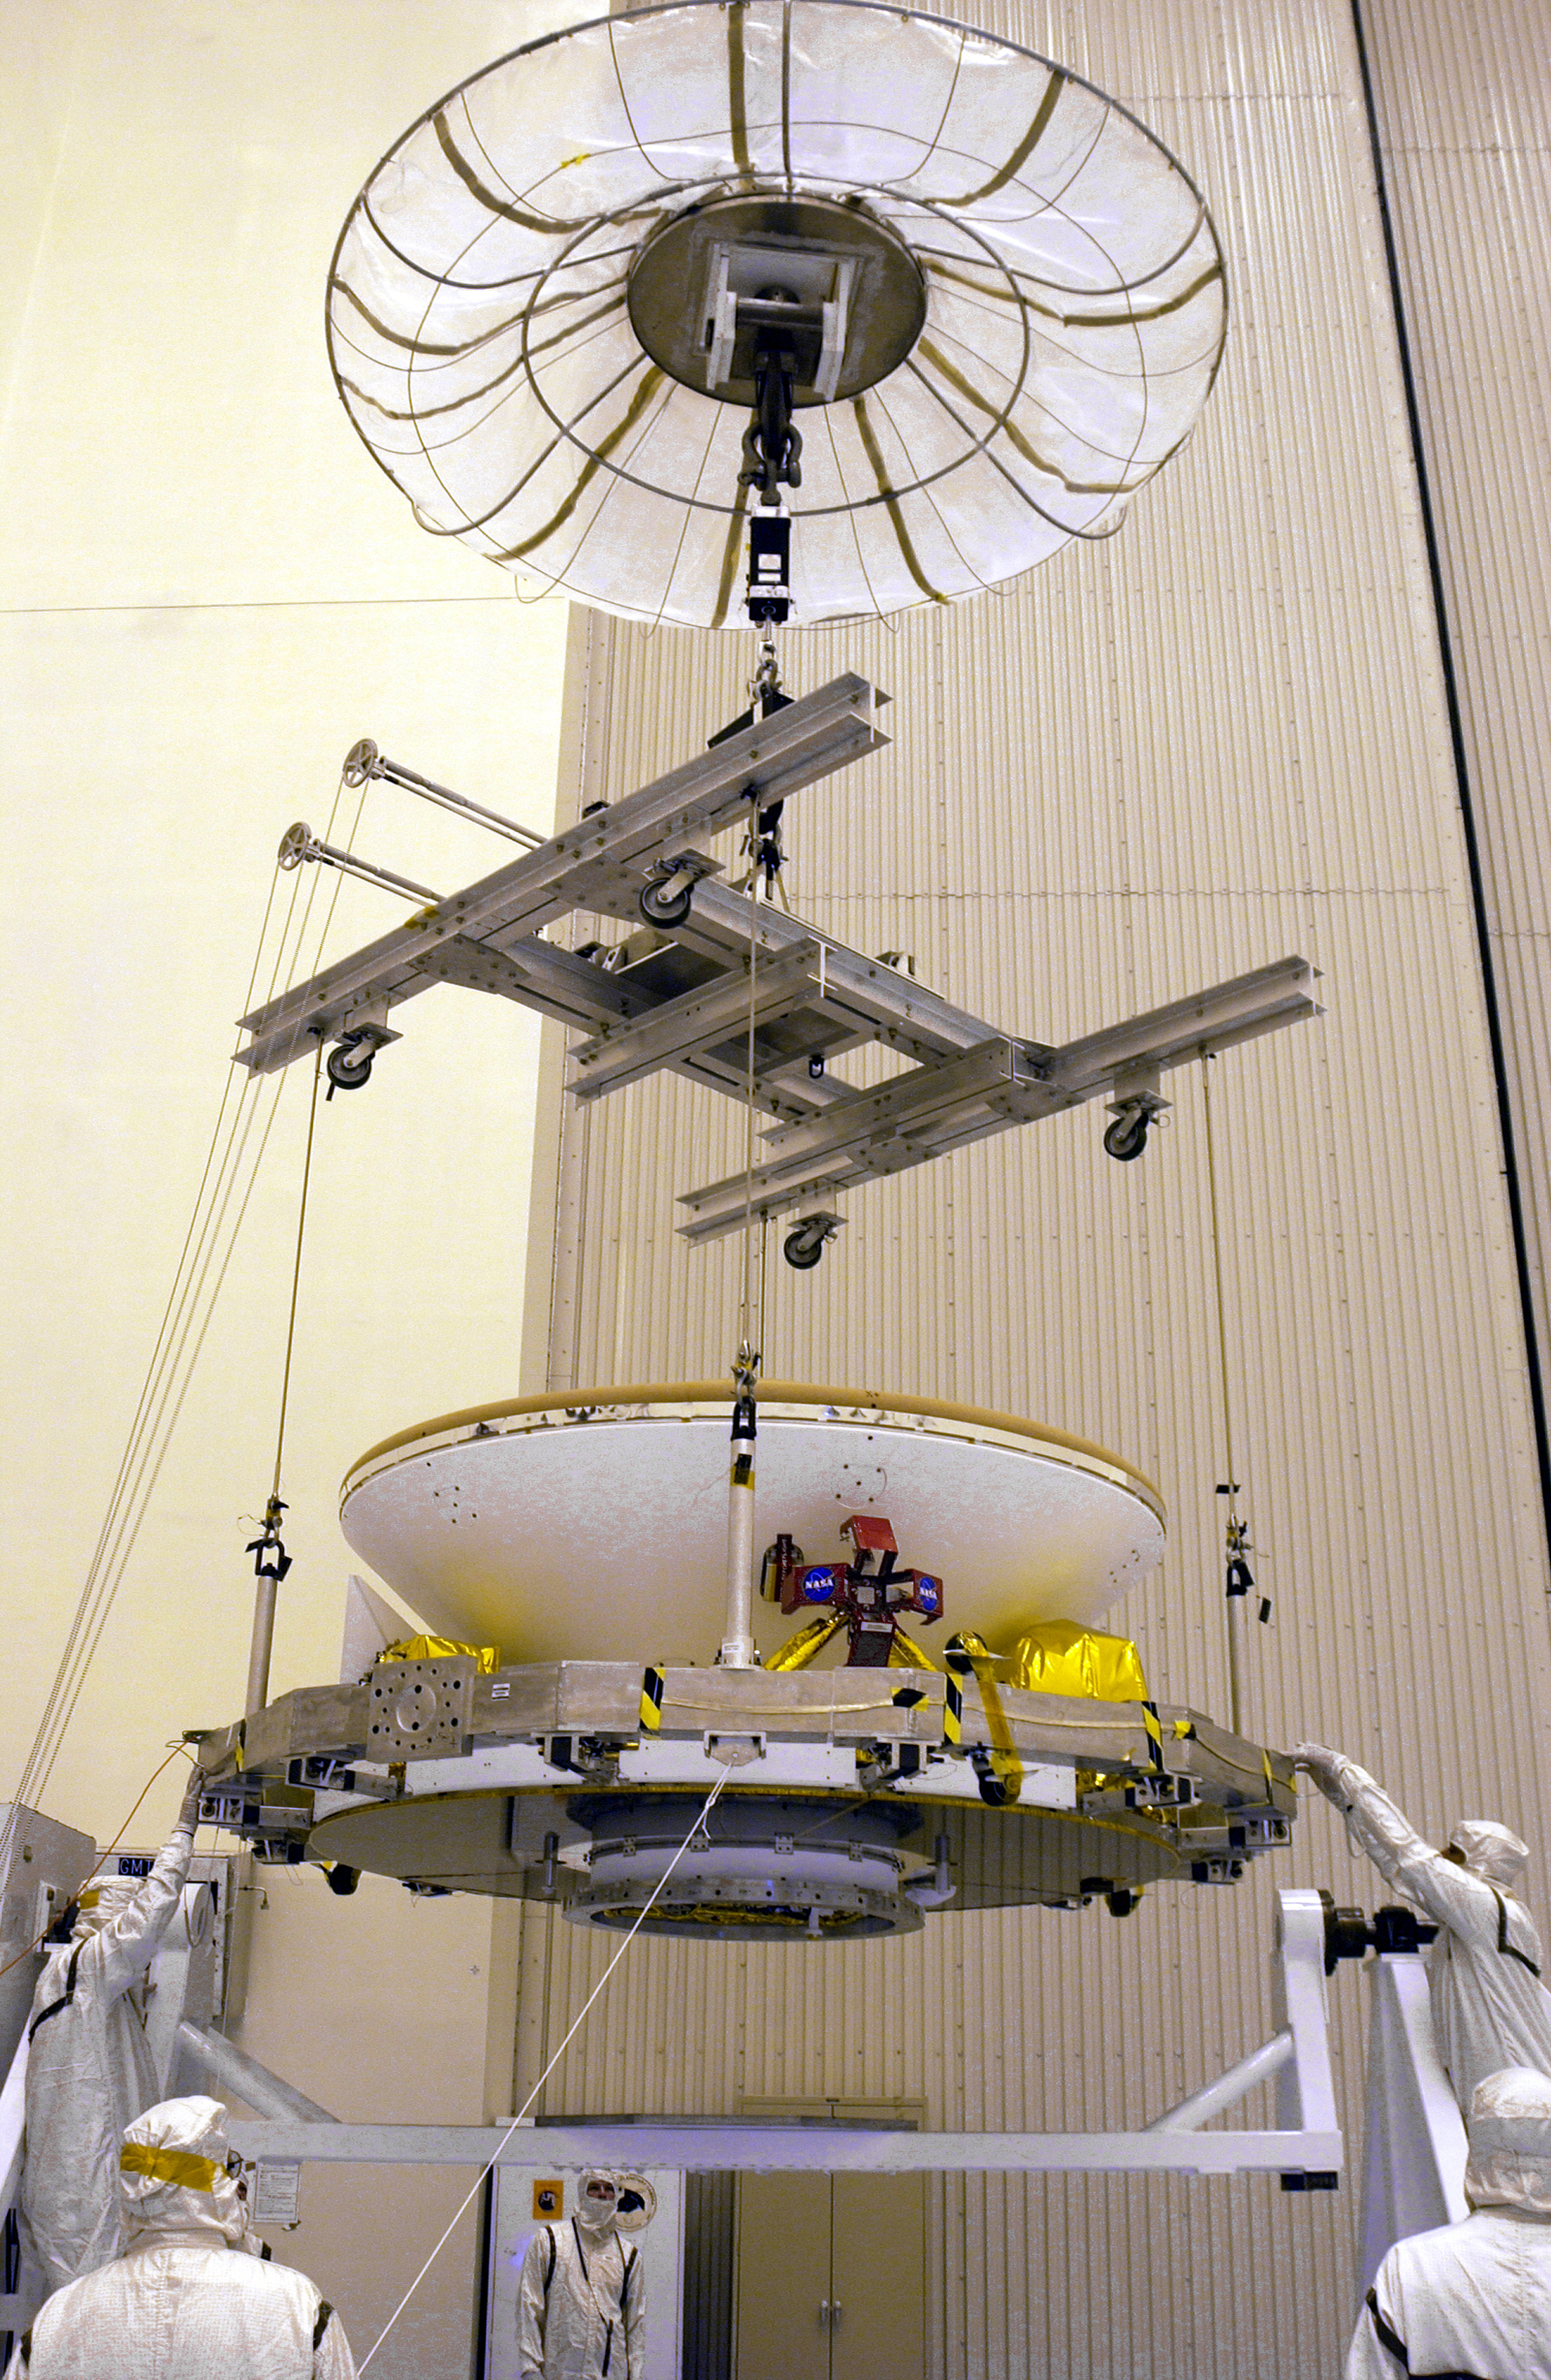 In the Payload Hazardous Servicing Facility, an overhead crane lowers the Mars Exploration Rover (MER) aeroshell toward a rotation stand.